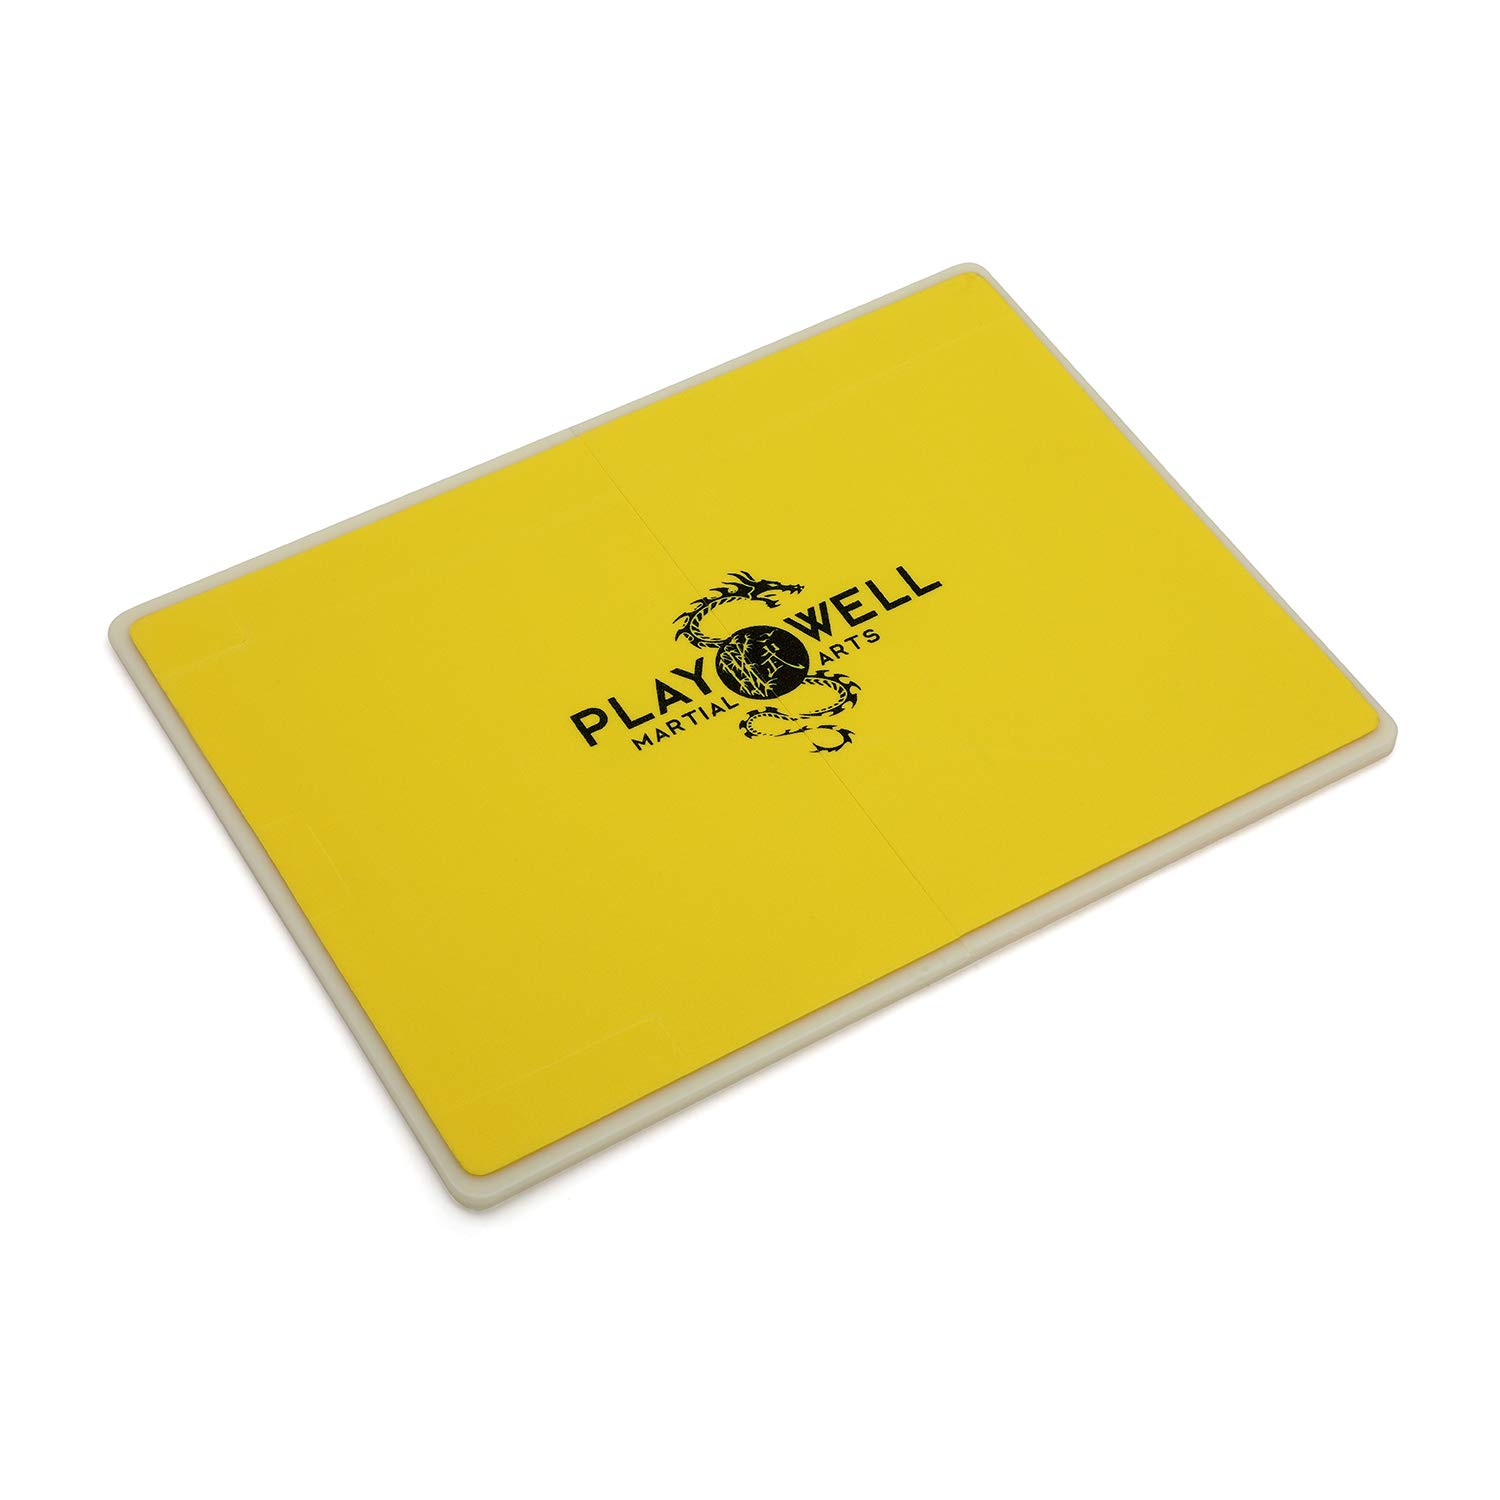 Playwell Martial Arts Childrens Break/Smash Rebreakable Boards - Yellow by Playwell